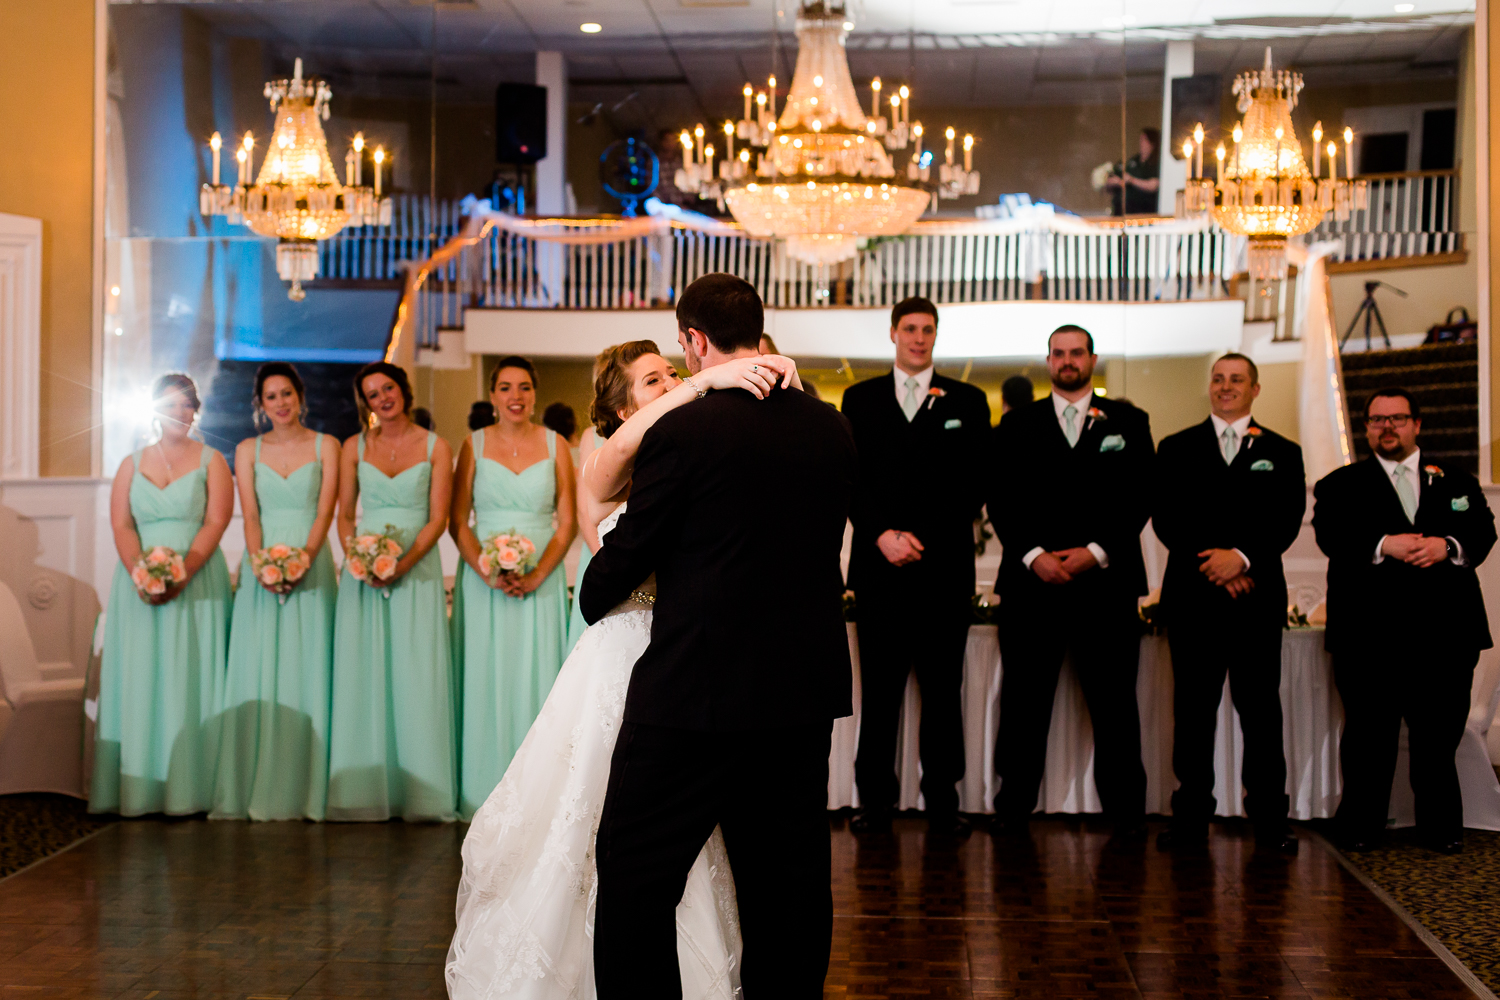 First dance of bride and groom. The wedding party looks on. There are chandeliers hanging above them.